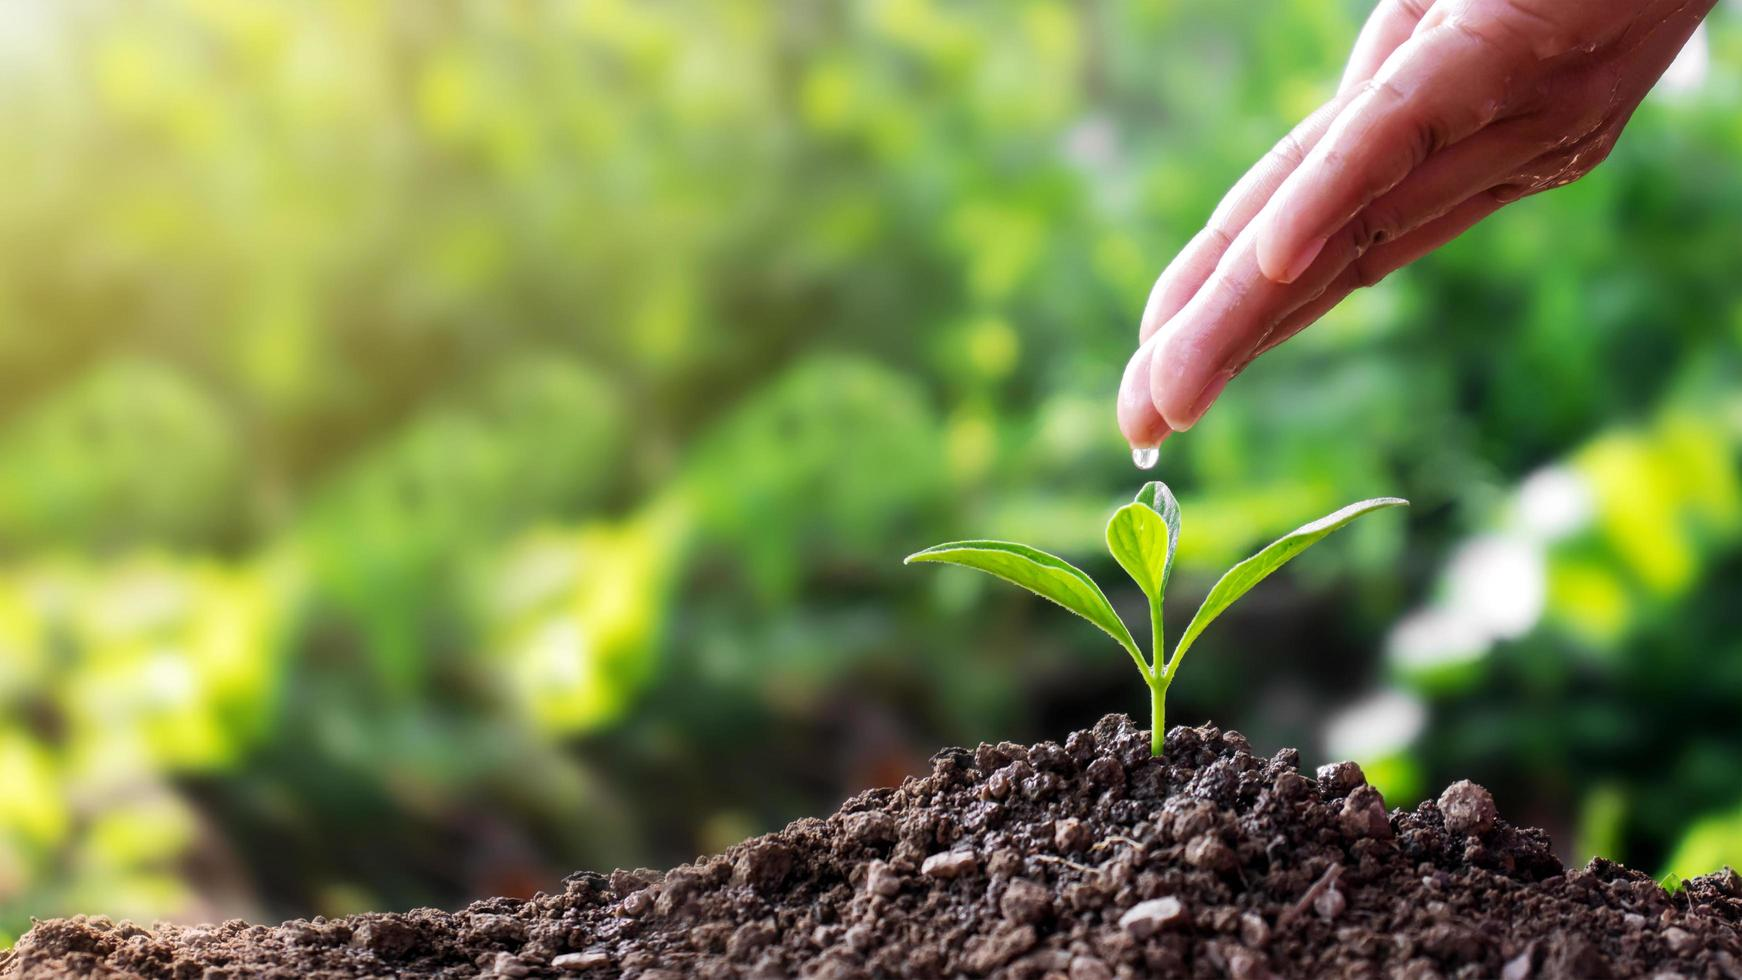 Seedlings on soil and hands, people pouring water, water cars, trees, plant growth ideas and text space photo